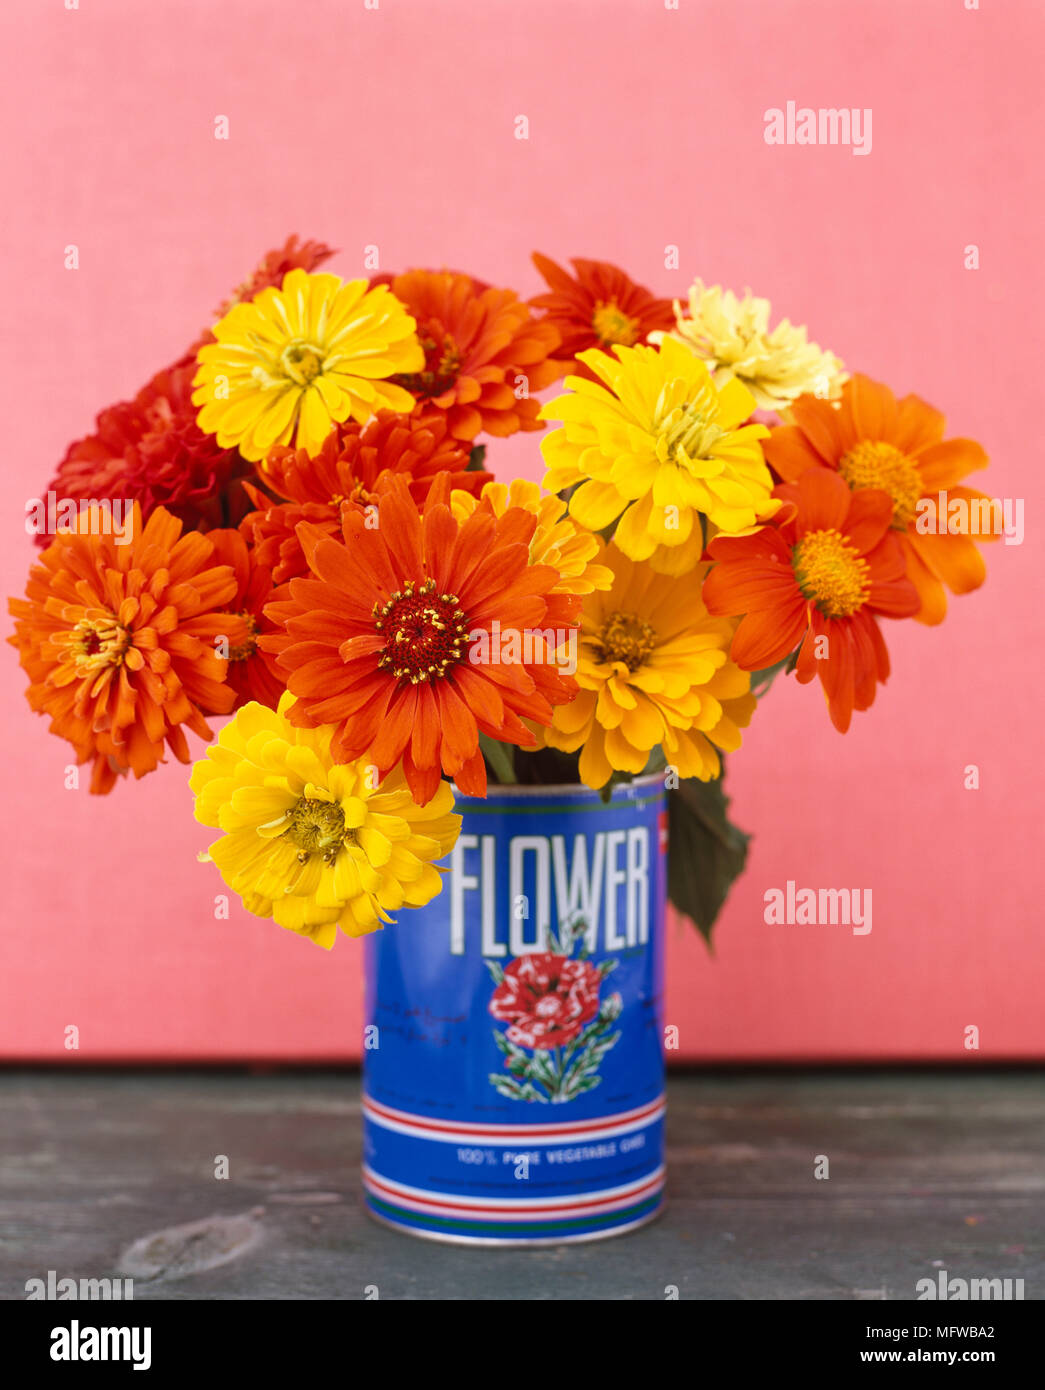 Red And Yellow Flower Arrangement In Blue Vase Stock Photo Alamy